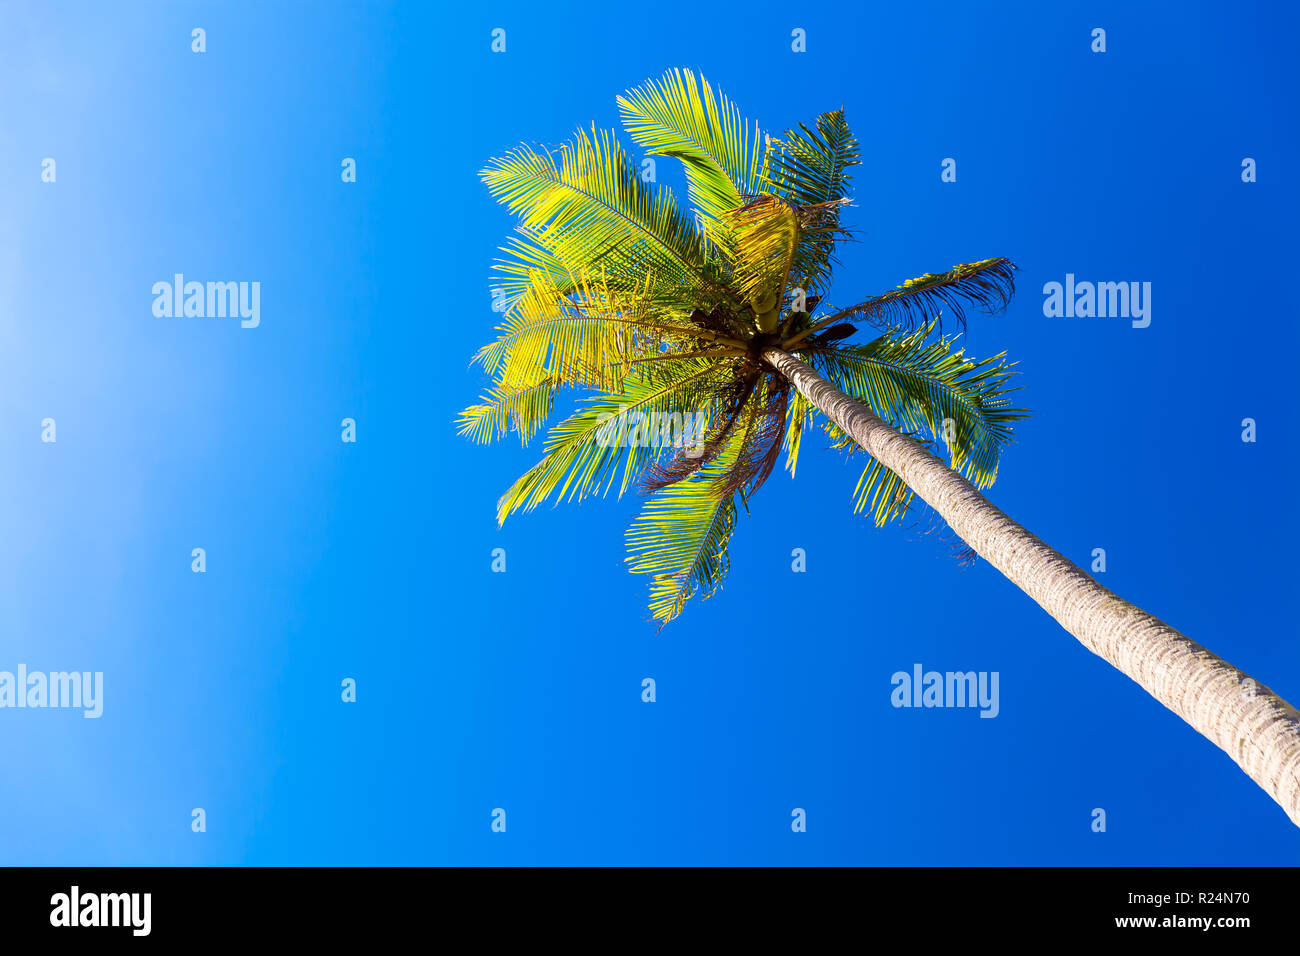 palm trees on the tropical beach - Stock Image